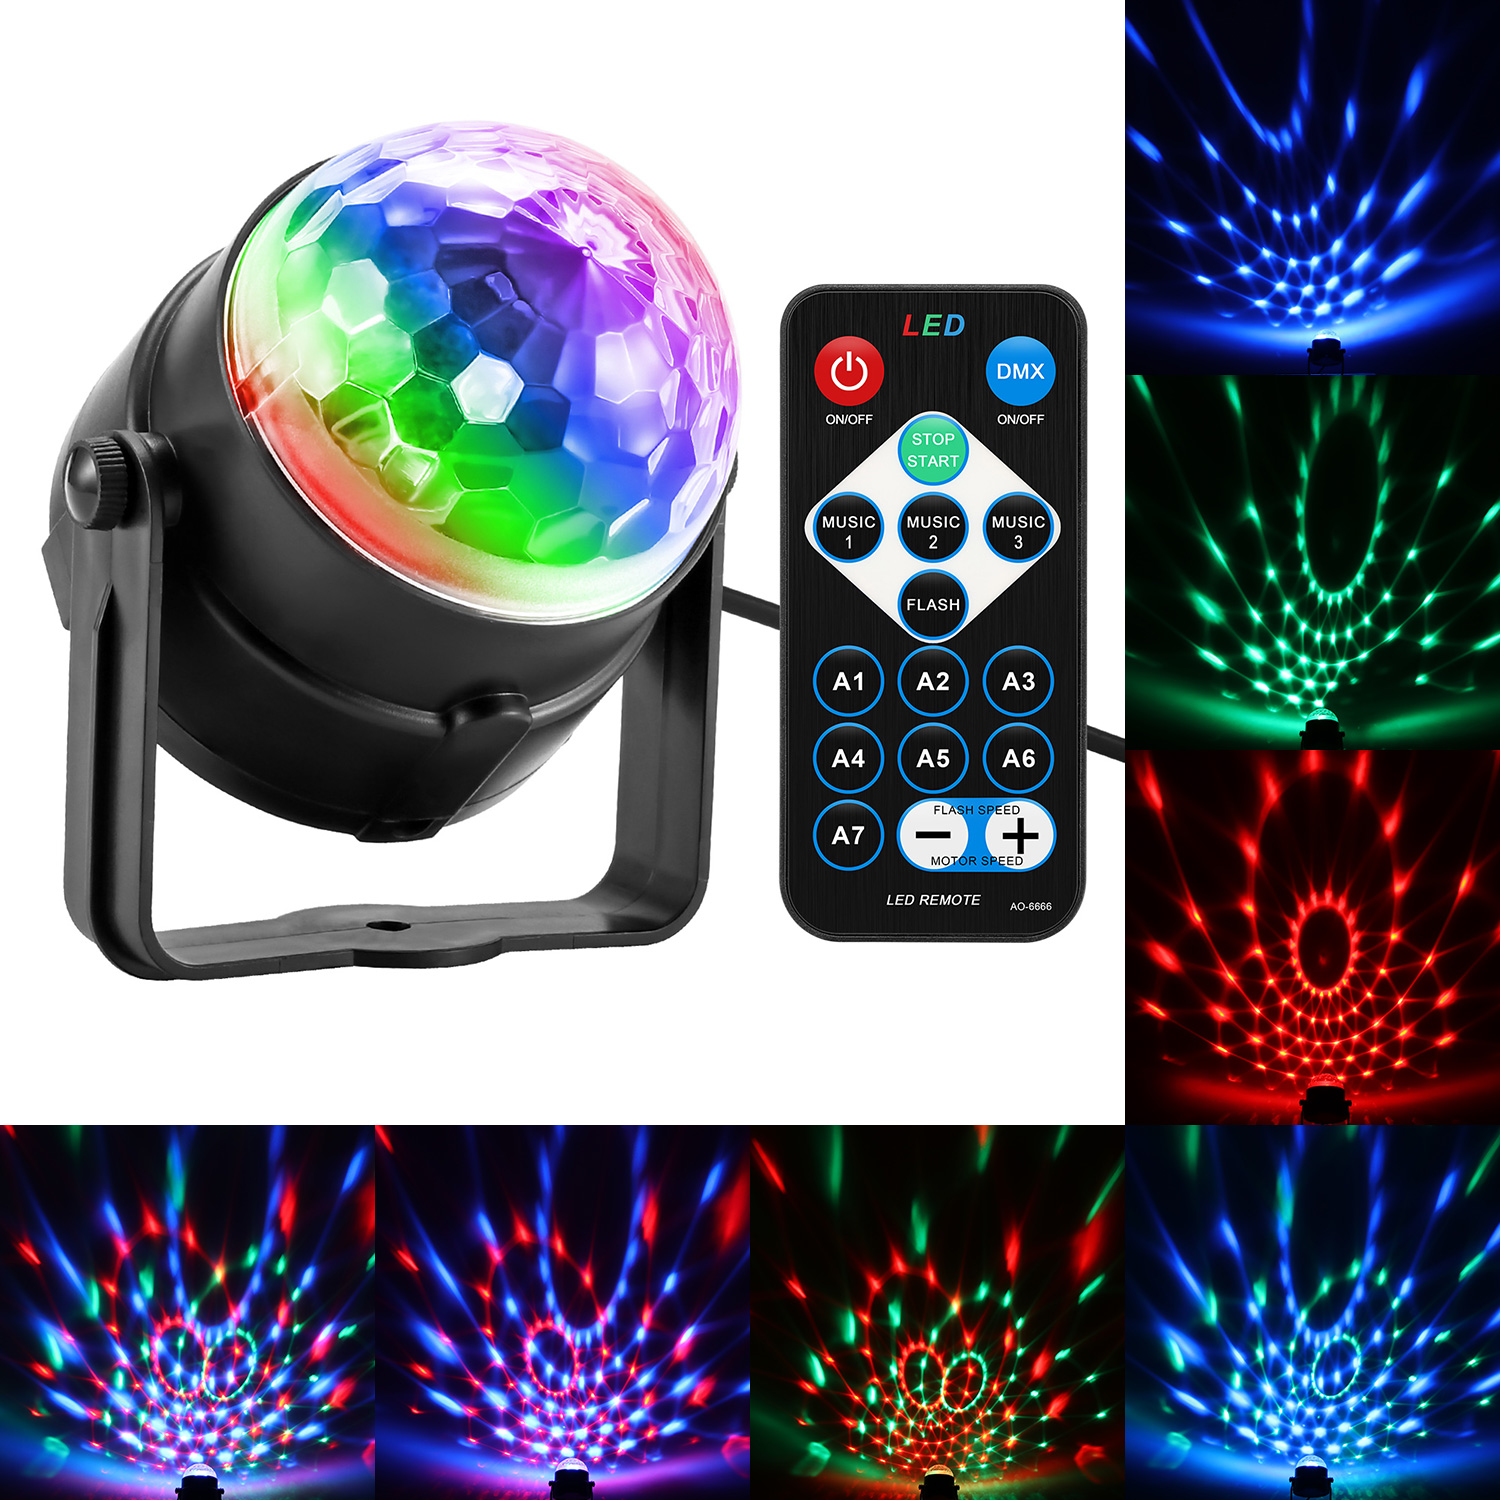 Mini RGB 3W Crystal Magic Ball Led Stage Disco Laser Light Sound IR Remote Control Christmas Projector Light For Home Decoration hot 6 3w leds voice cotrol laser stage light mp3 magic ball light ir remote digital rgb led crystal magic ball